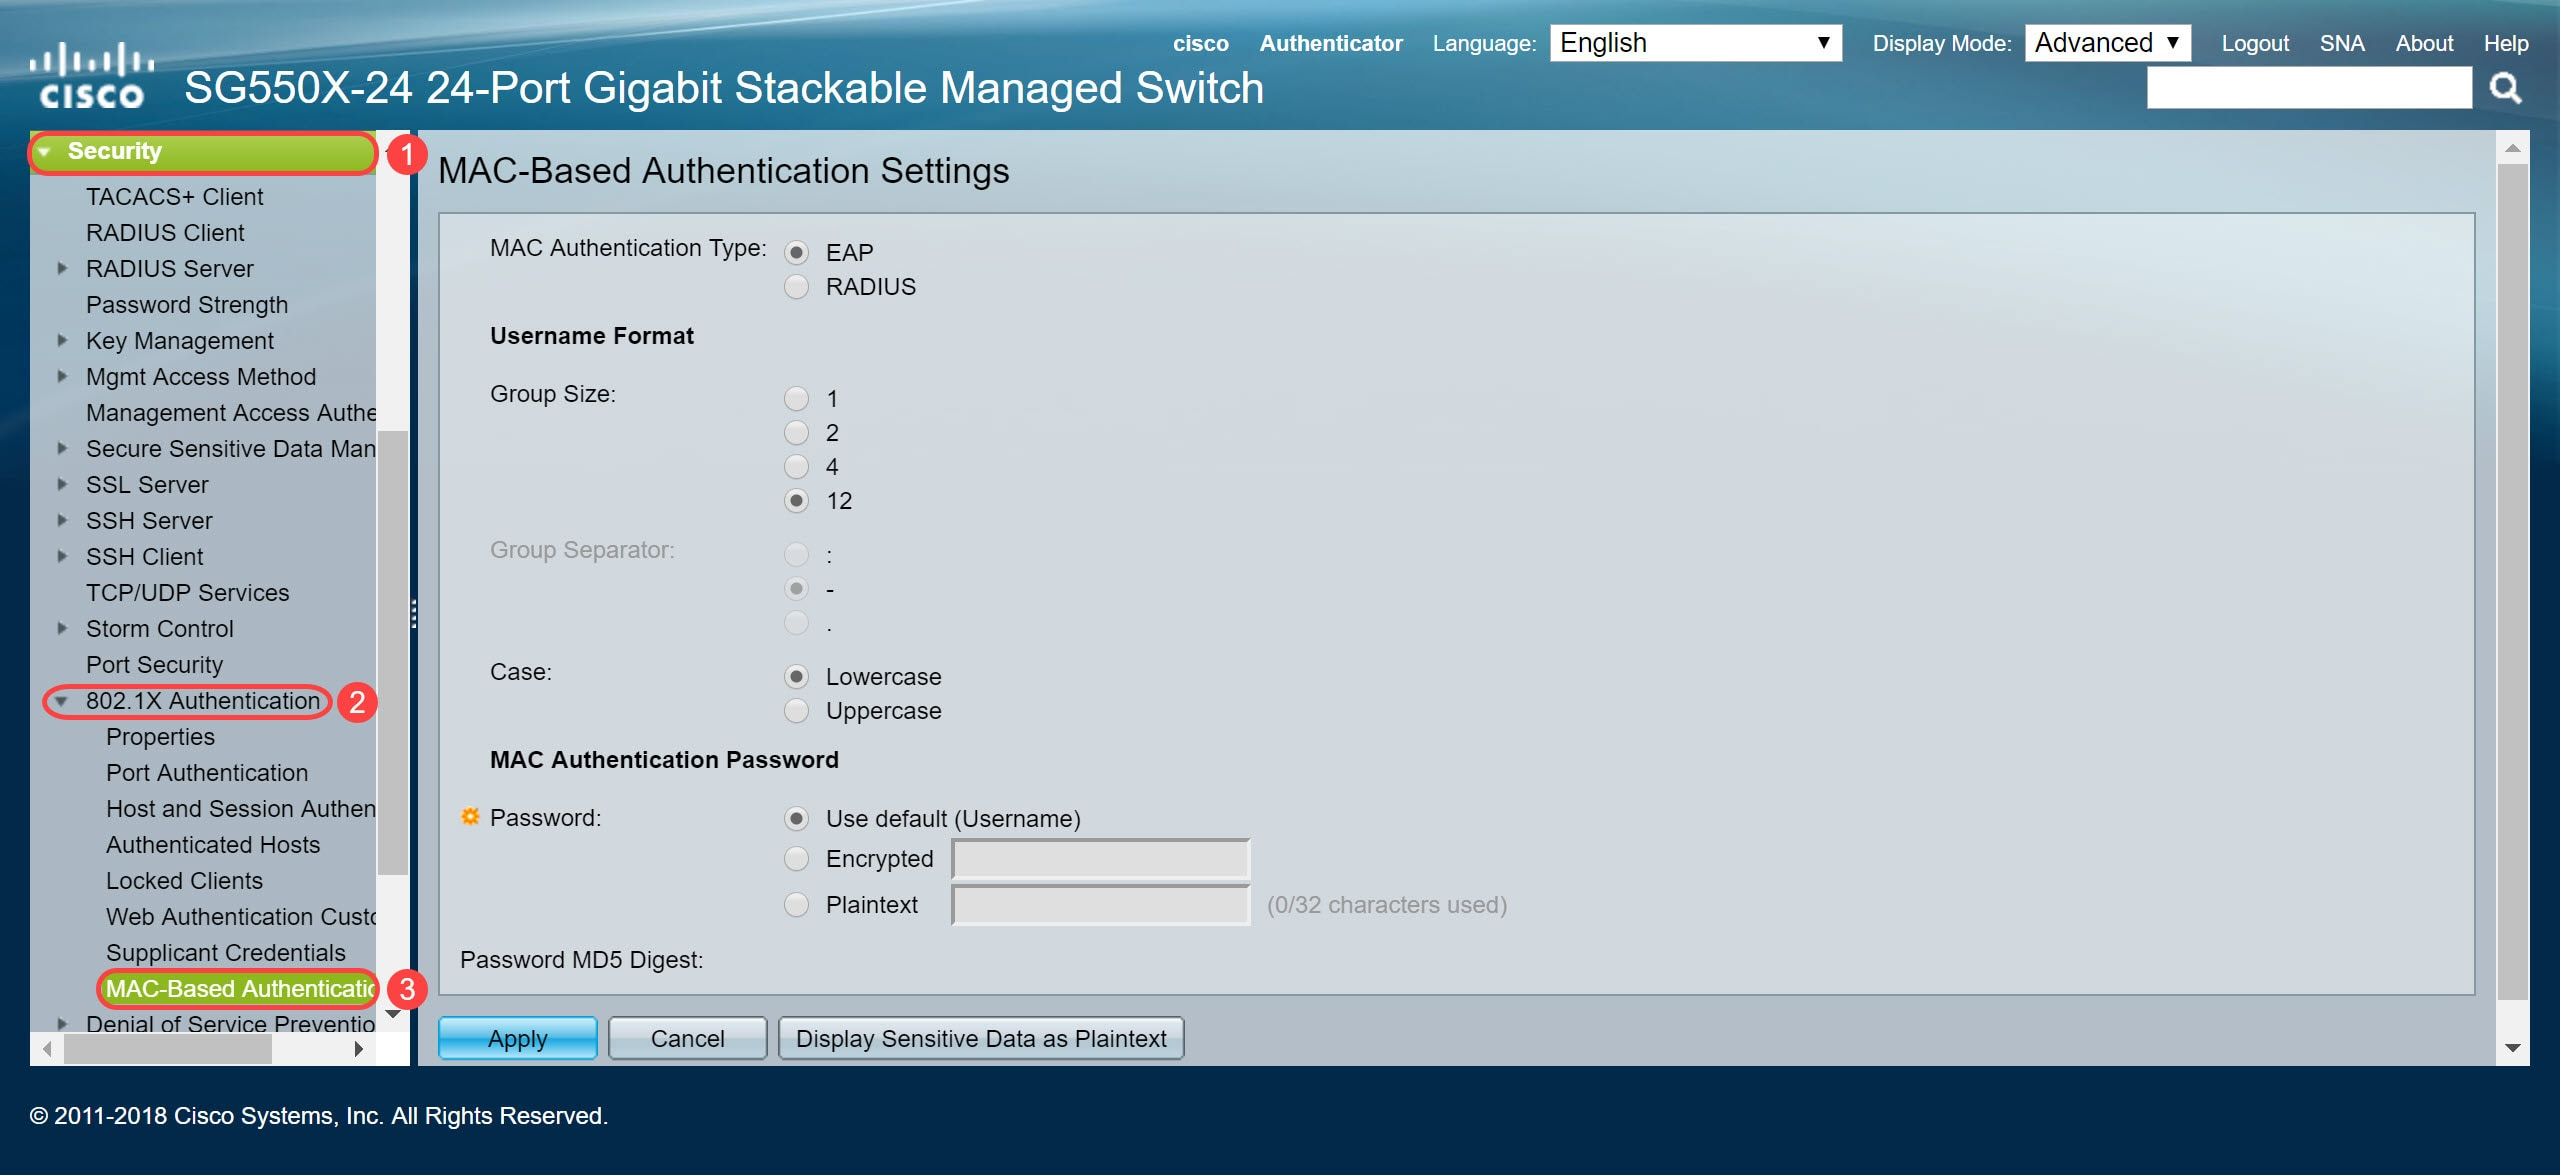 Configuring MAC-Based Authentication on a Switch - Cisco